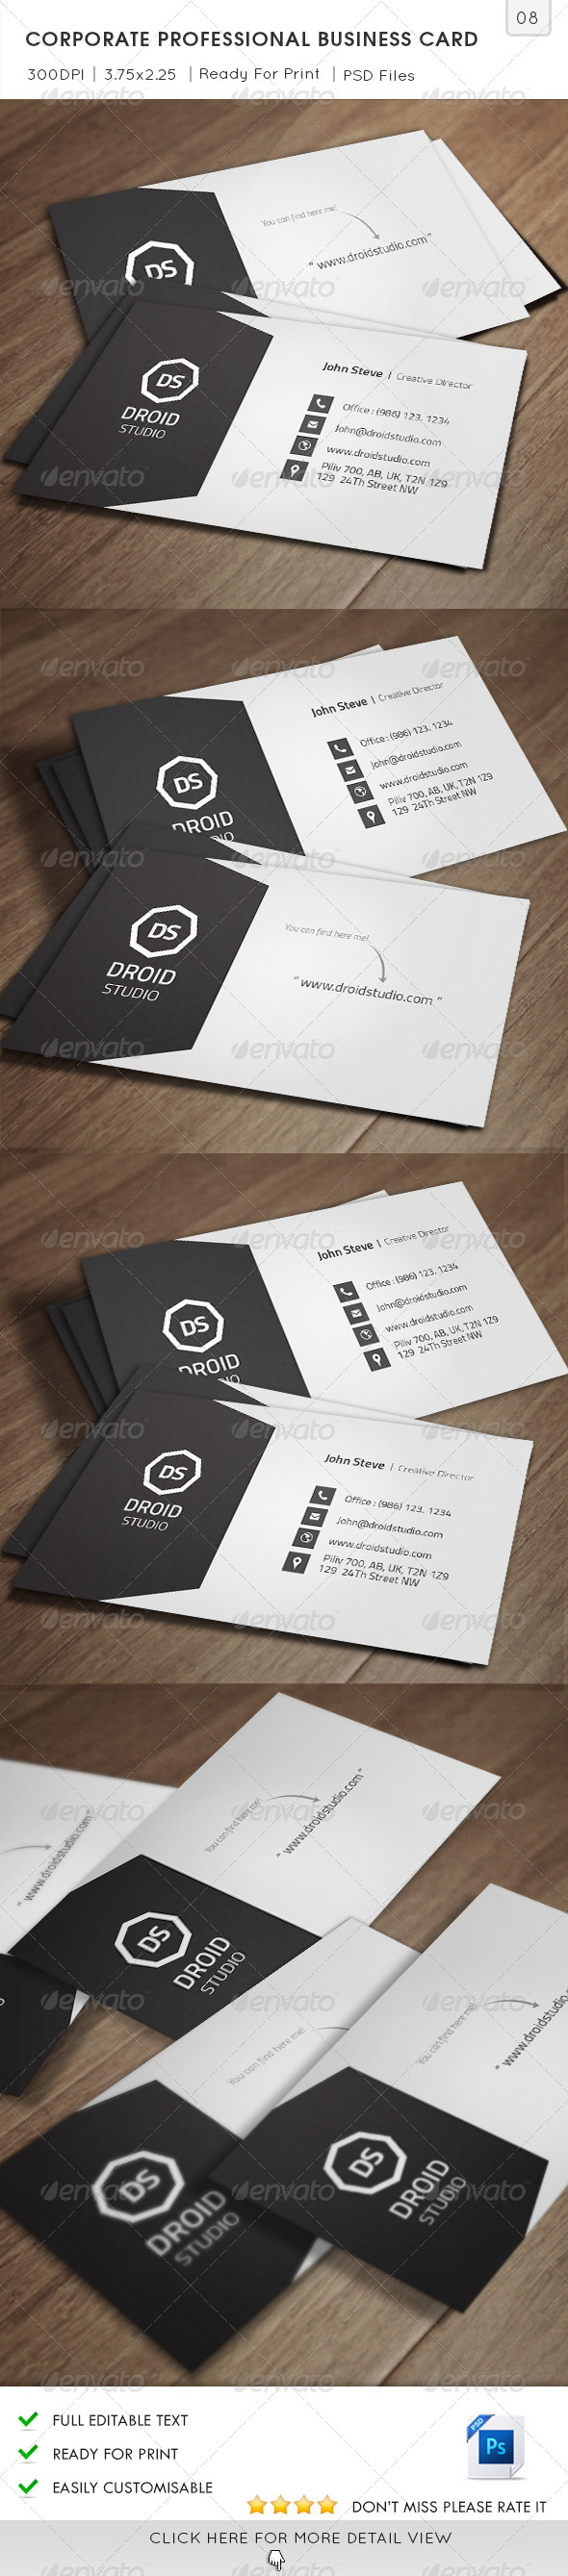 Corporate Professional Business Card v08 - Corporate Business Cards